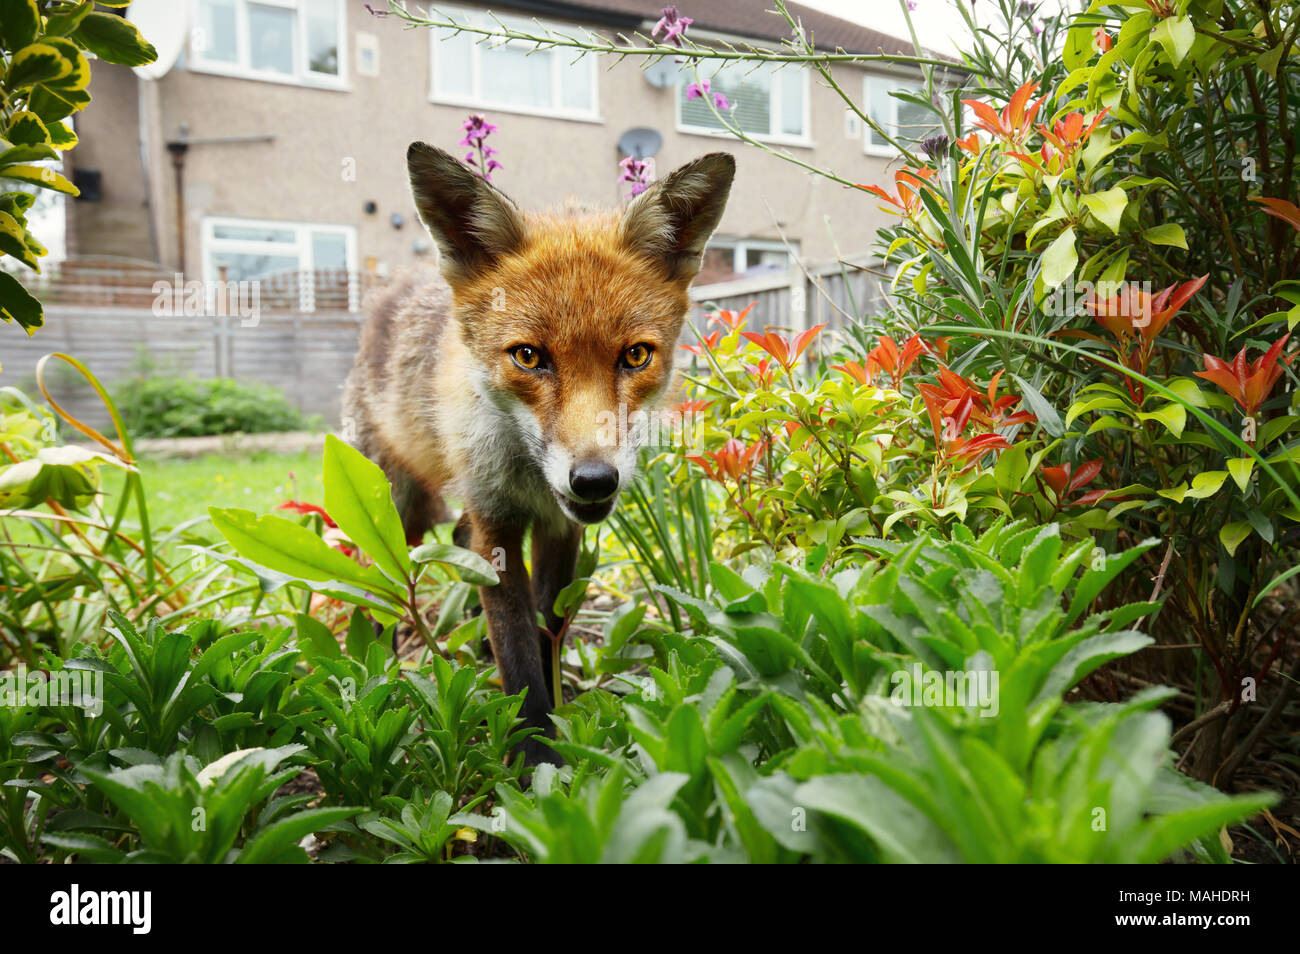 Red fox standing in the garden with flowers near house in a suburb of London, summer in UK. - Stock Image